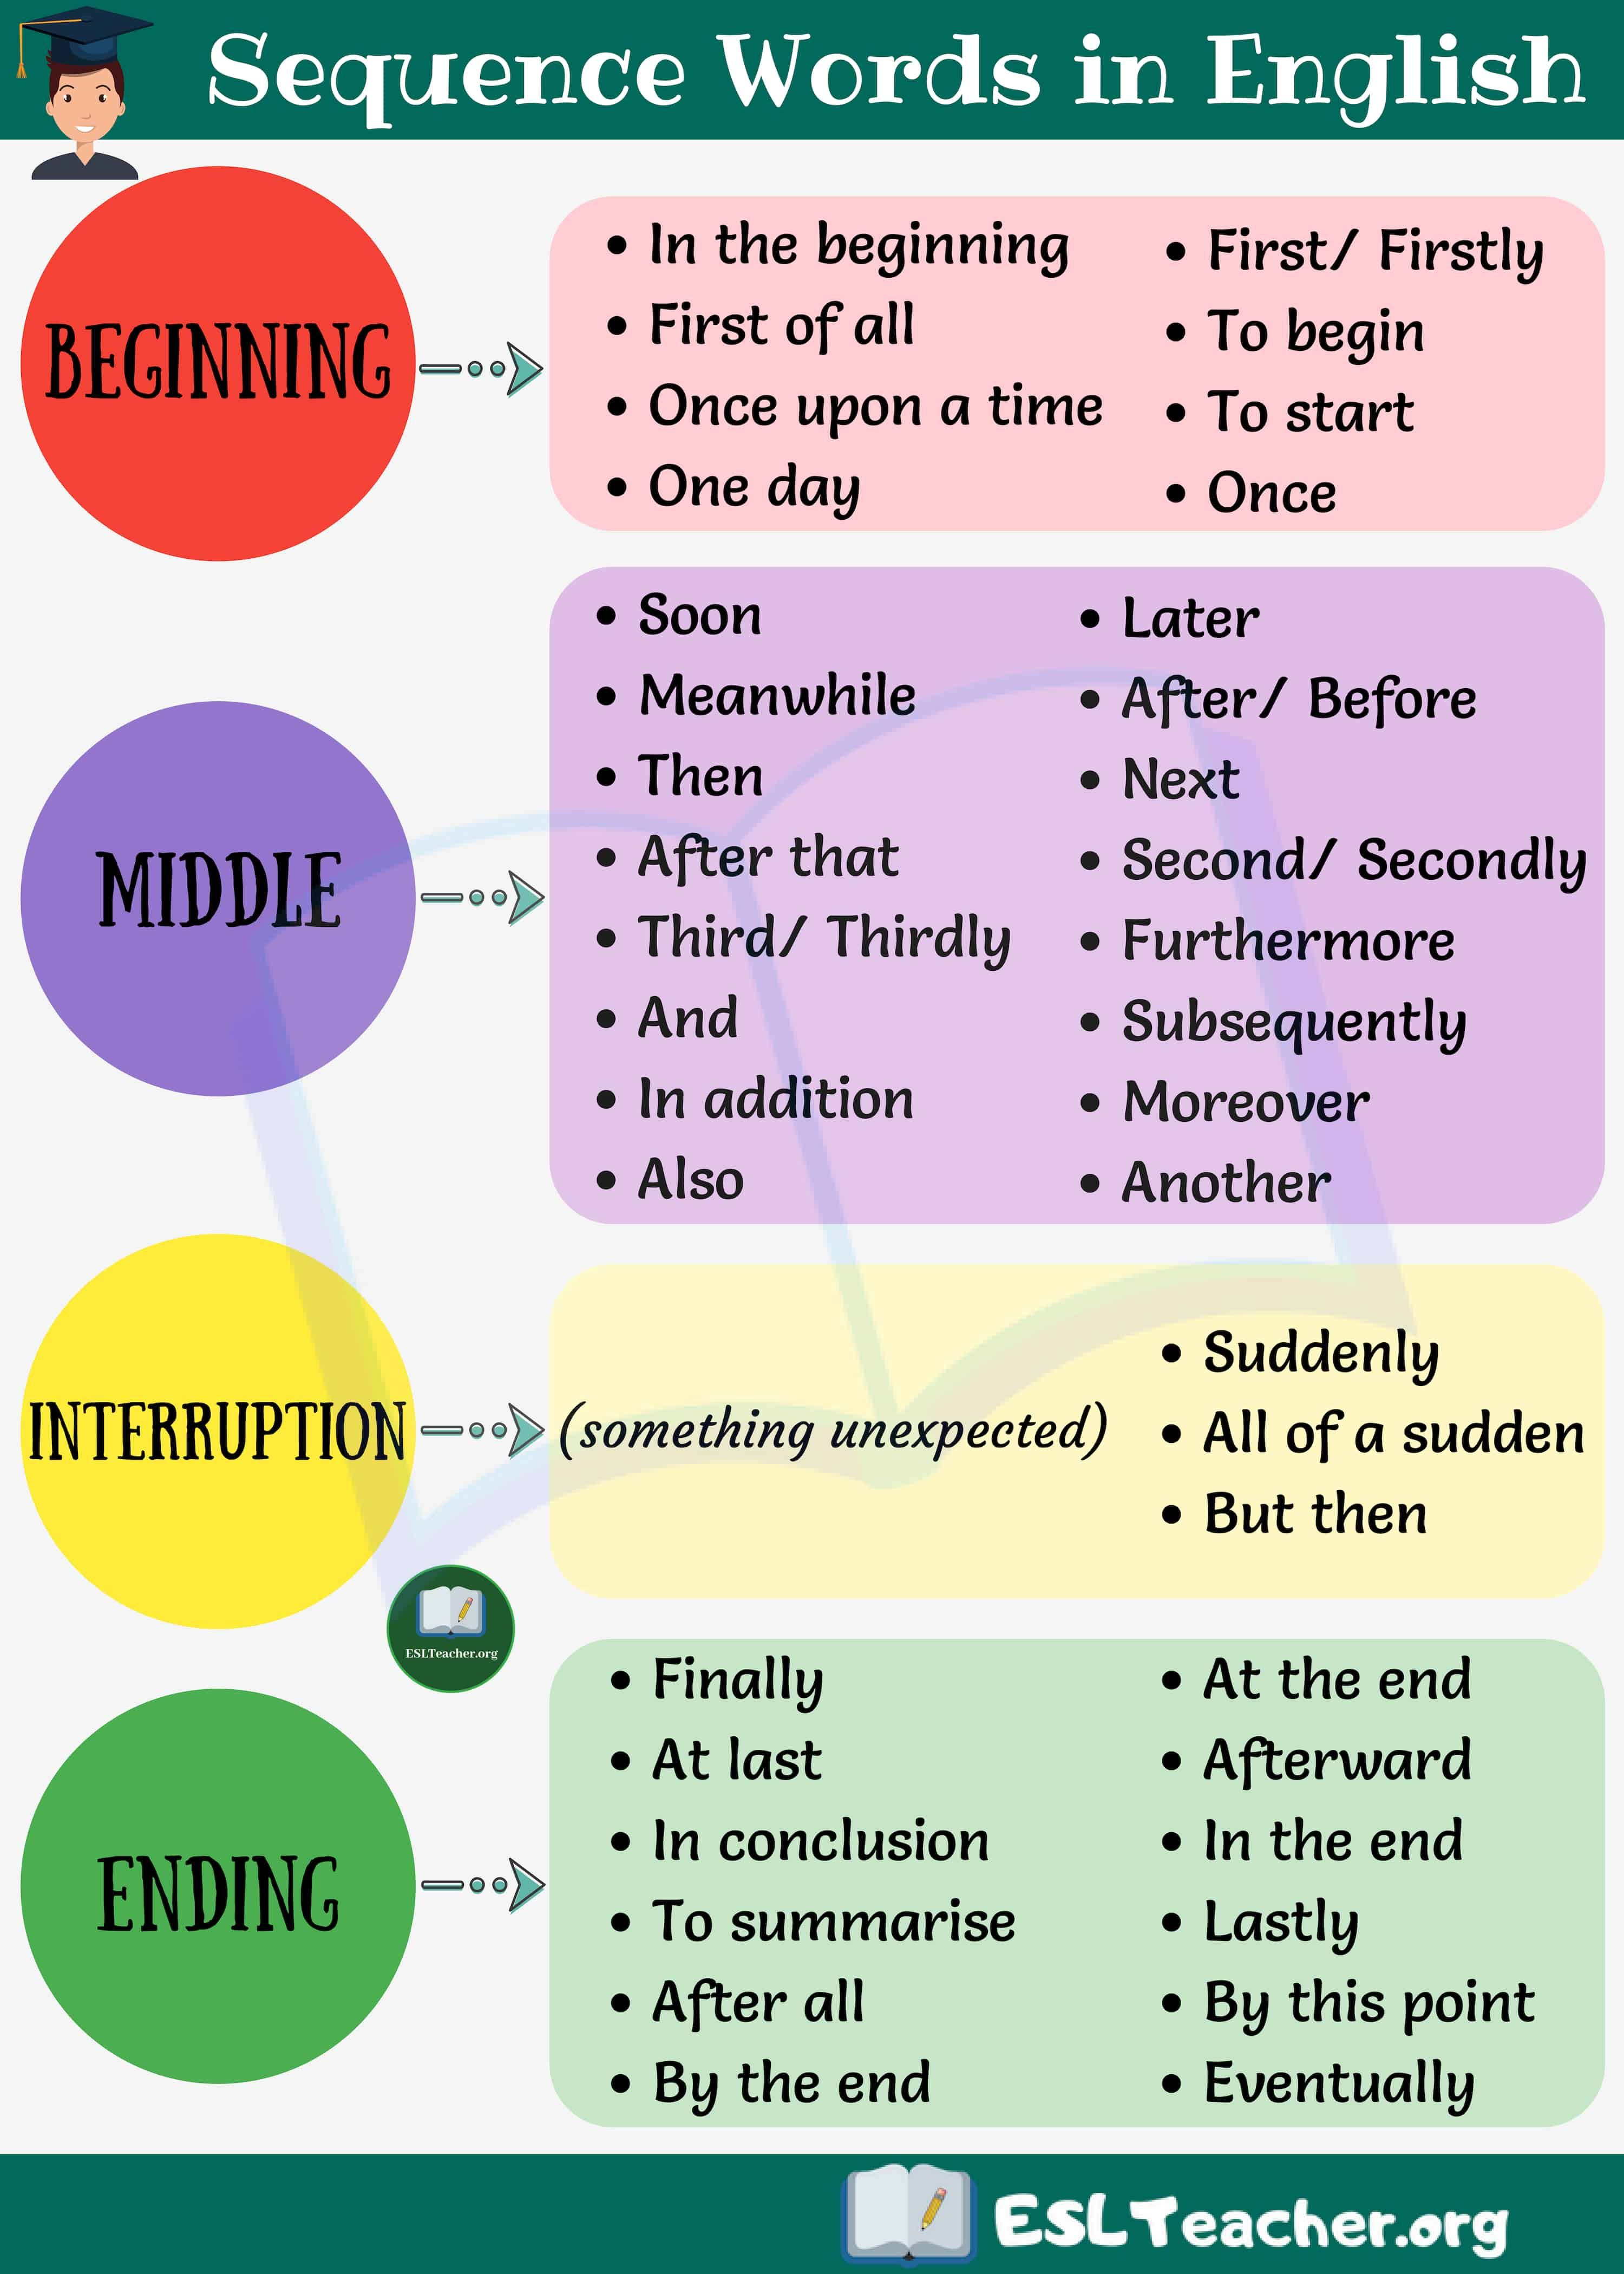 Useful Sequence Words in English   Essay writing skills [ 4200 x 3000 Pixel ]